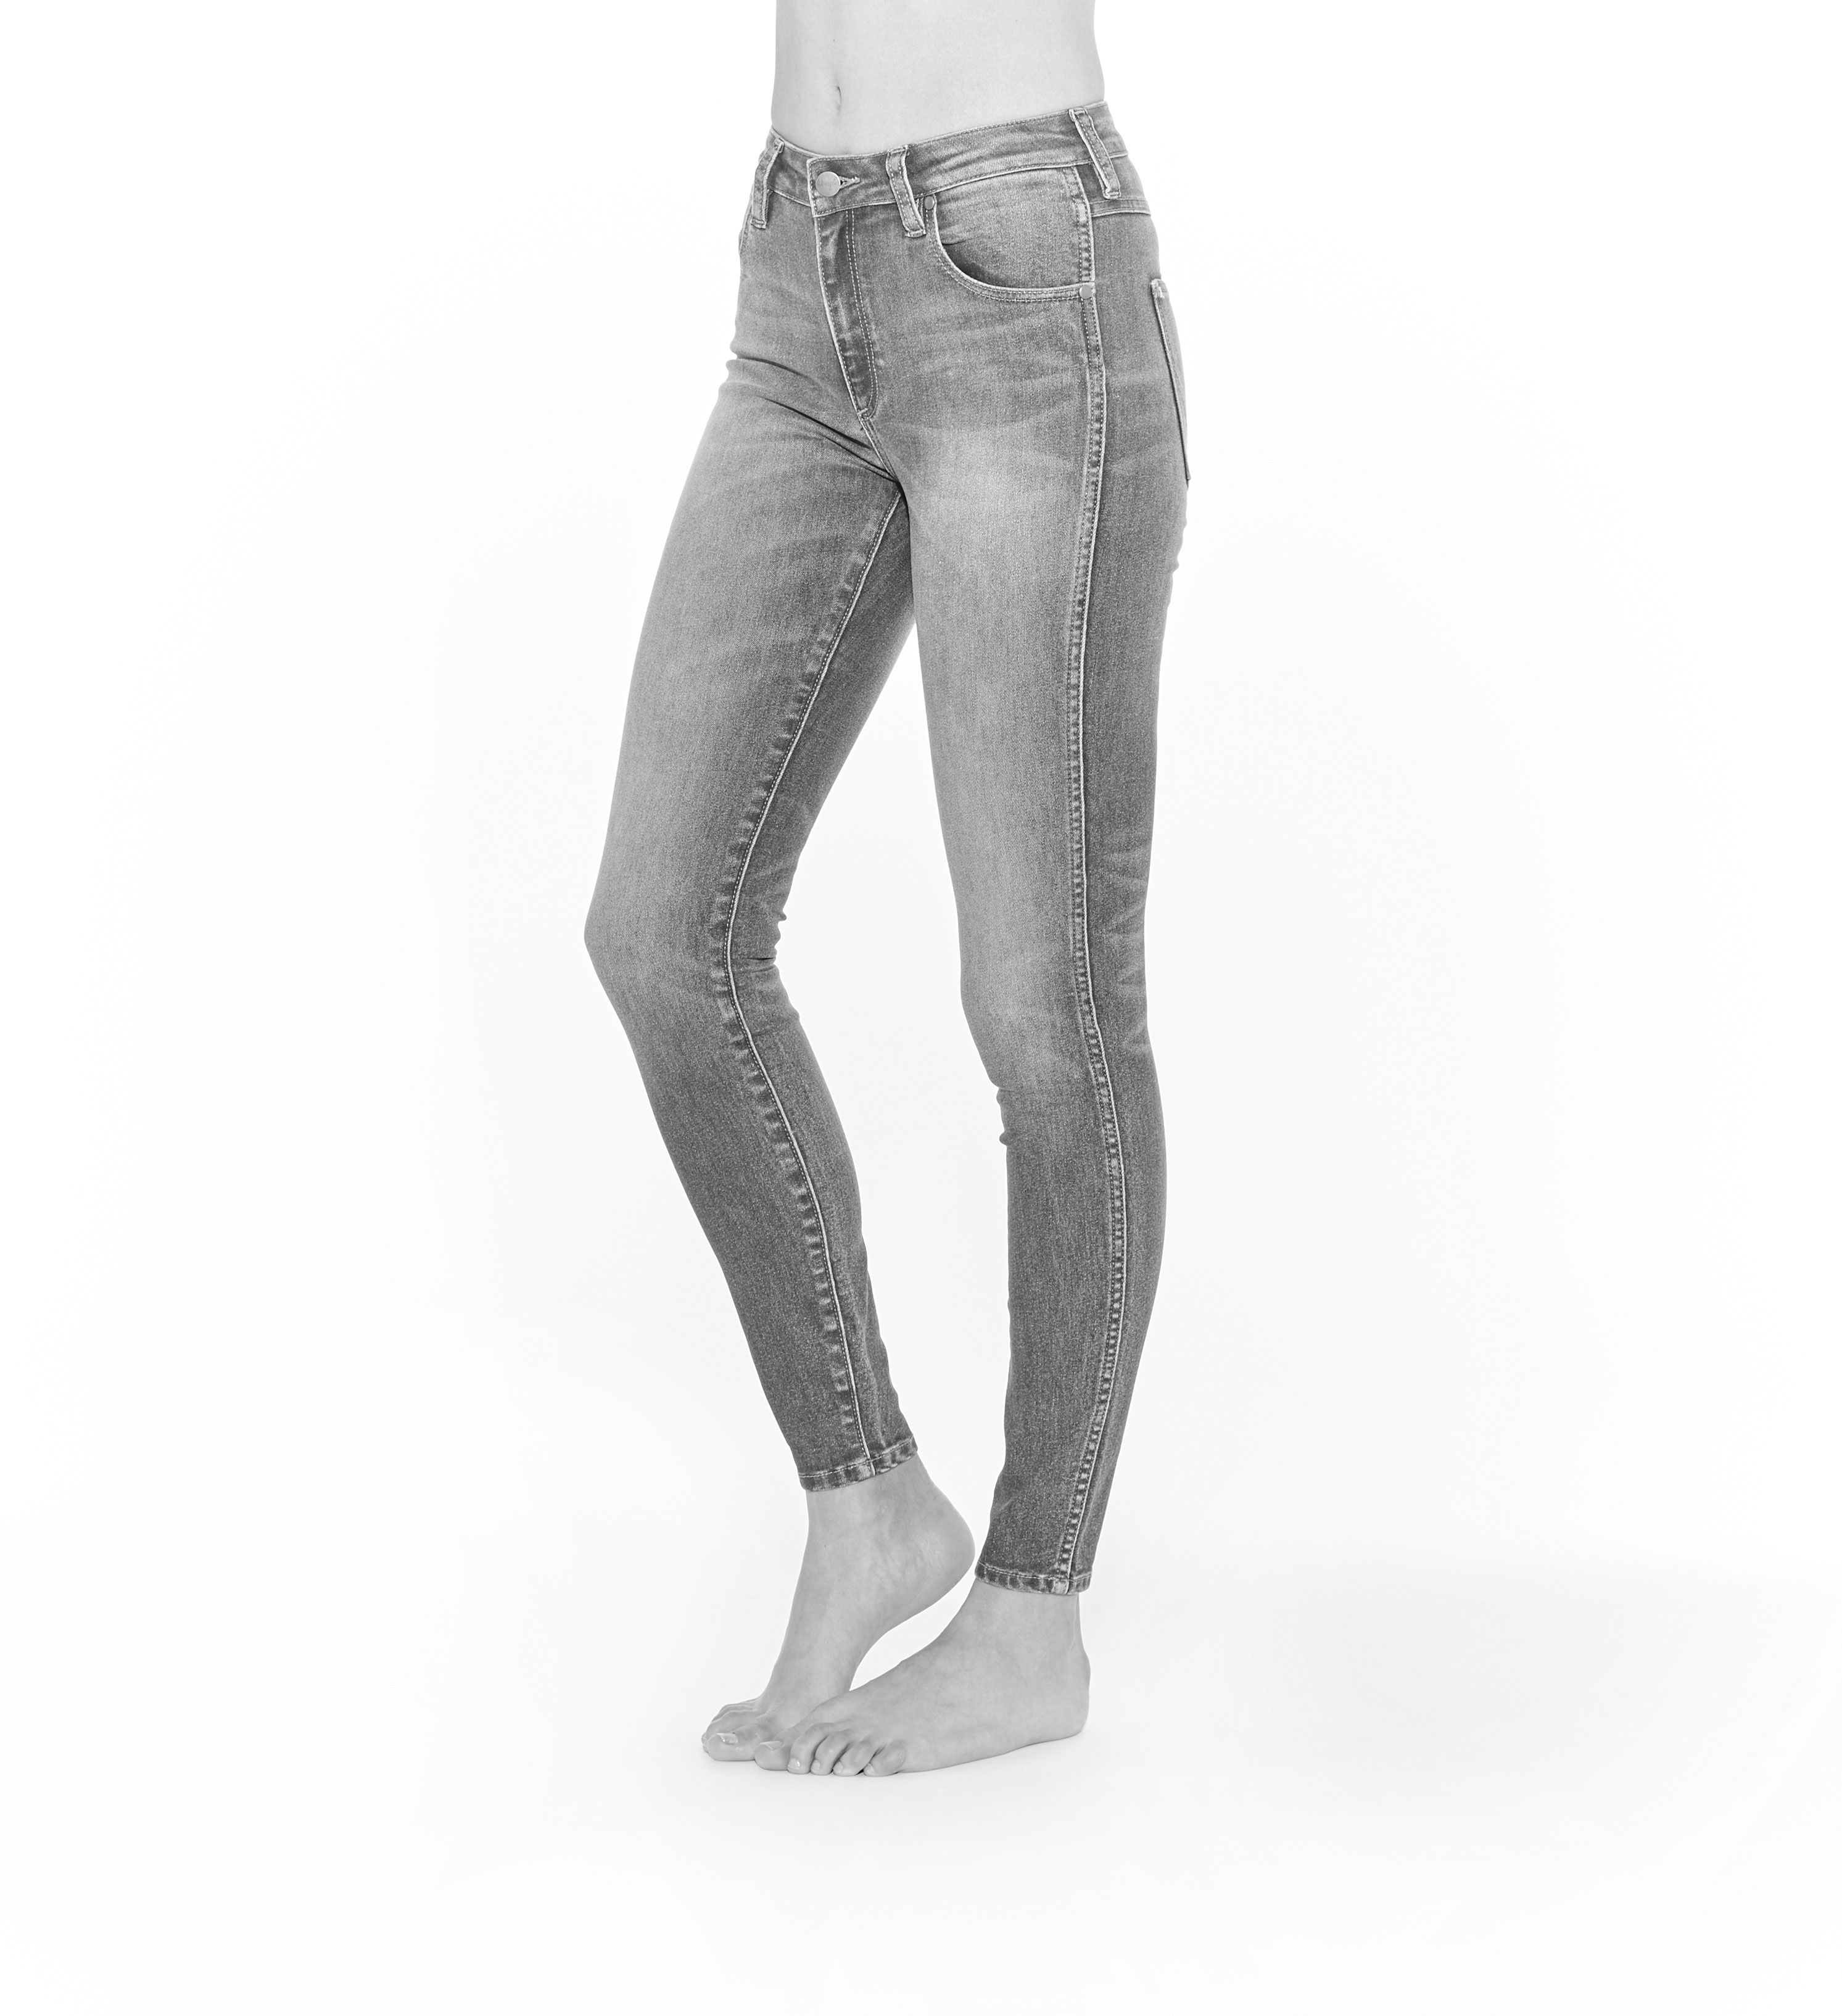 4d8a860c Mid Pins Jeans by Wrangler | Women Jeans | Skinny Jeans | Wrangler ...